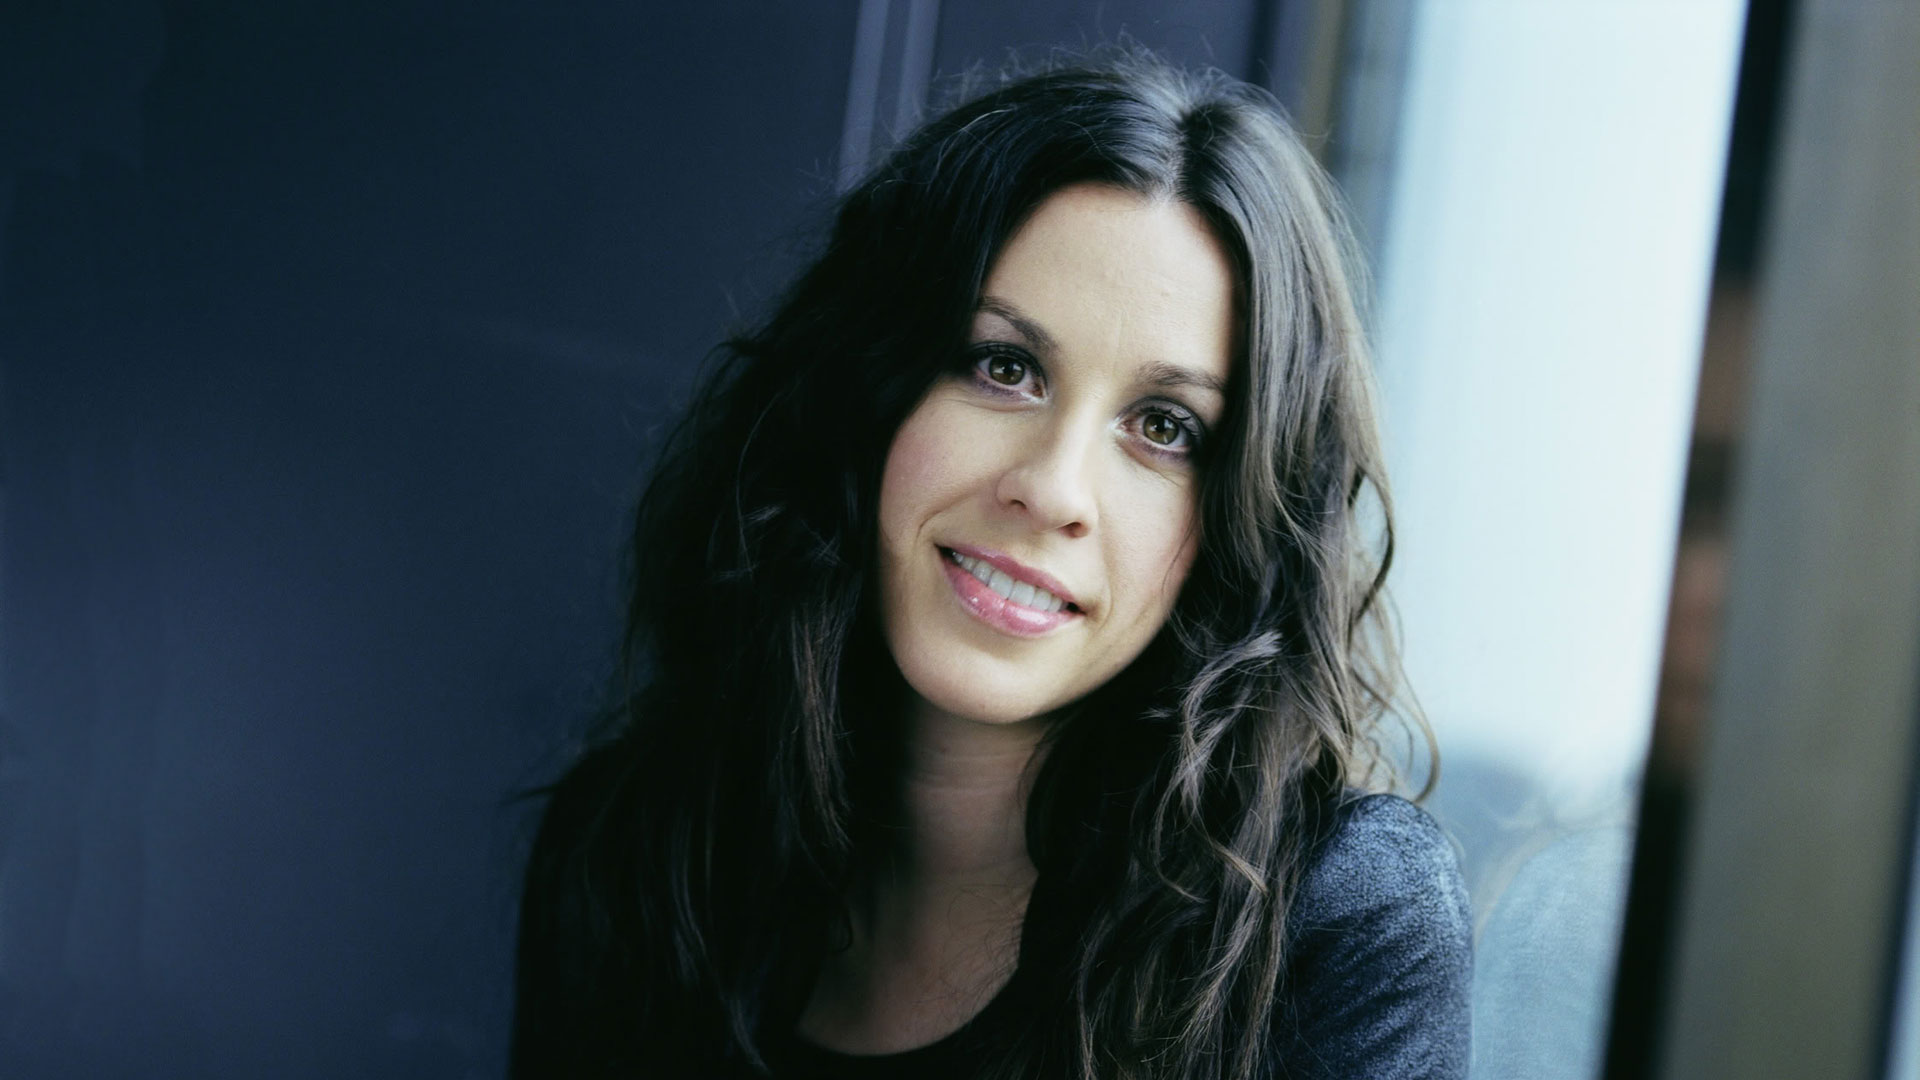 alanis morissette слушатьalanis morissette uninvited, alanis morissette one, alanis morissette ironic, alanis morissette - ironic перевод, alanis morissette you oughta know, alanis morissette скачать, alanis morissette uninvited скачать, alanis morissette not as we, alanis morissette i remain, alanis morissette слушать, alanis morissette wiki, alanis morissette ironic lyrics, alanis morissette – crazy, alanis morissette jagged little pill, alanis morissette hand in my pocket, alanis morissette still перевод, alanis morissette not as we скачать, alanis morissette uninvited lyrics, alanis morissette mp3, alanis morissette one слушать